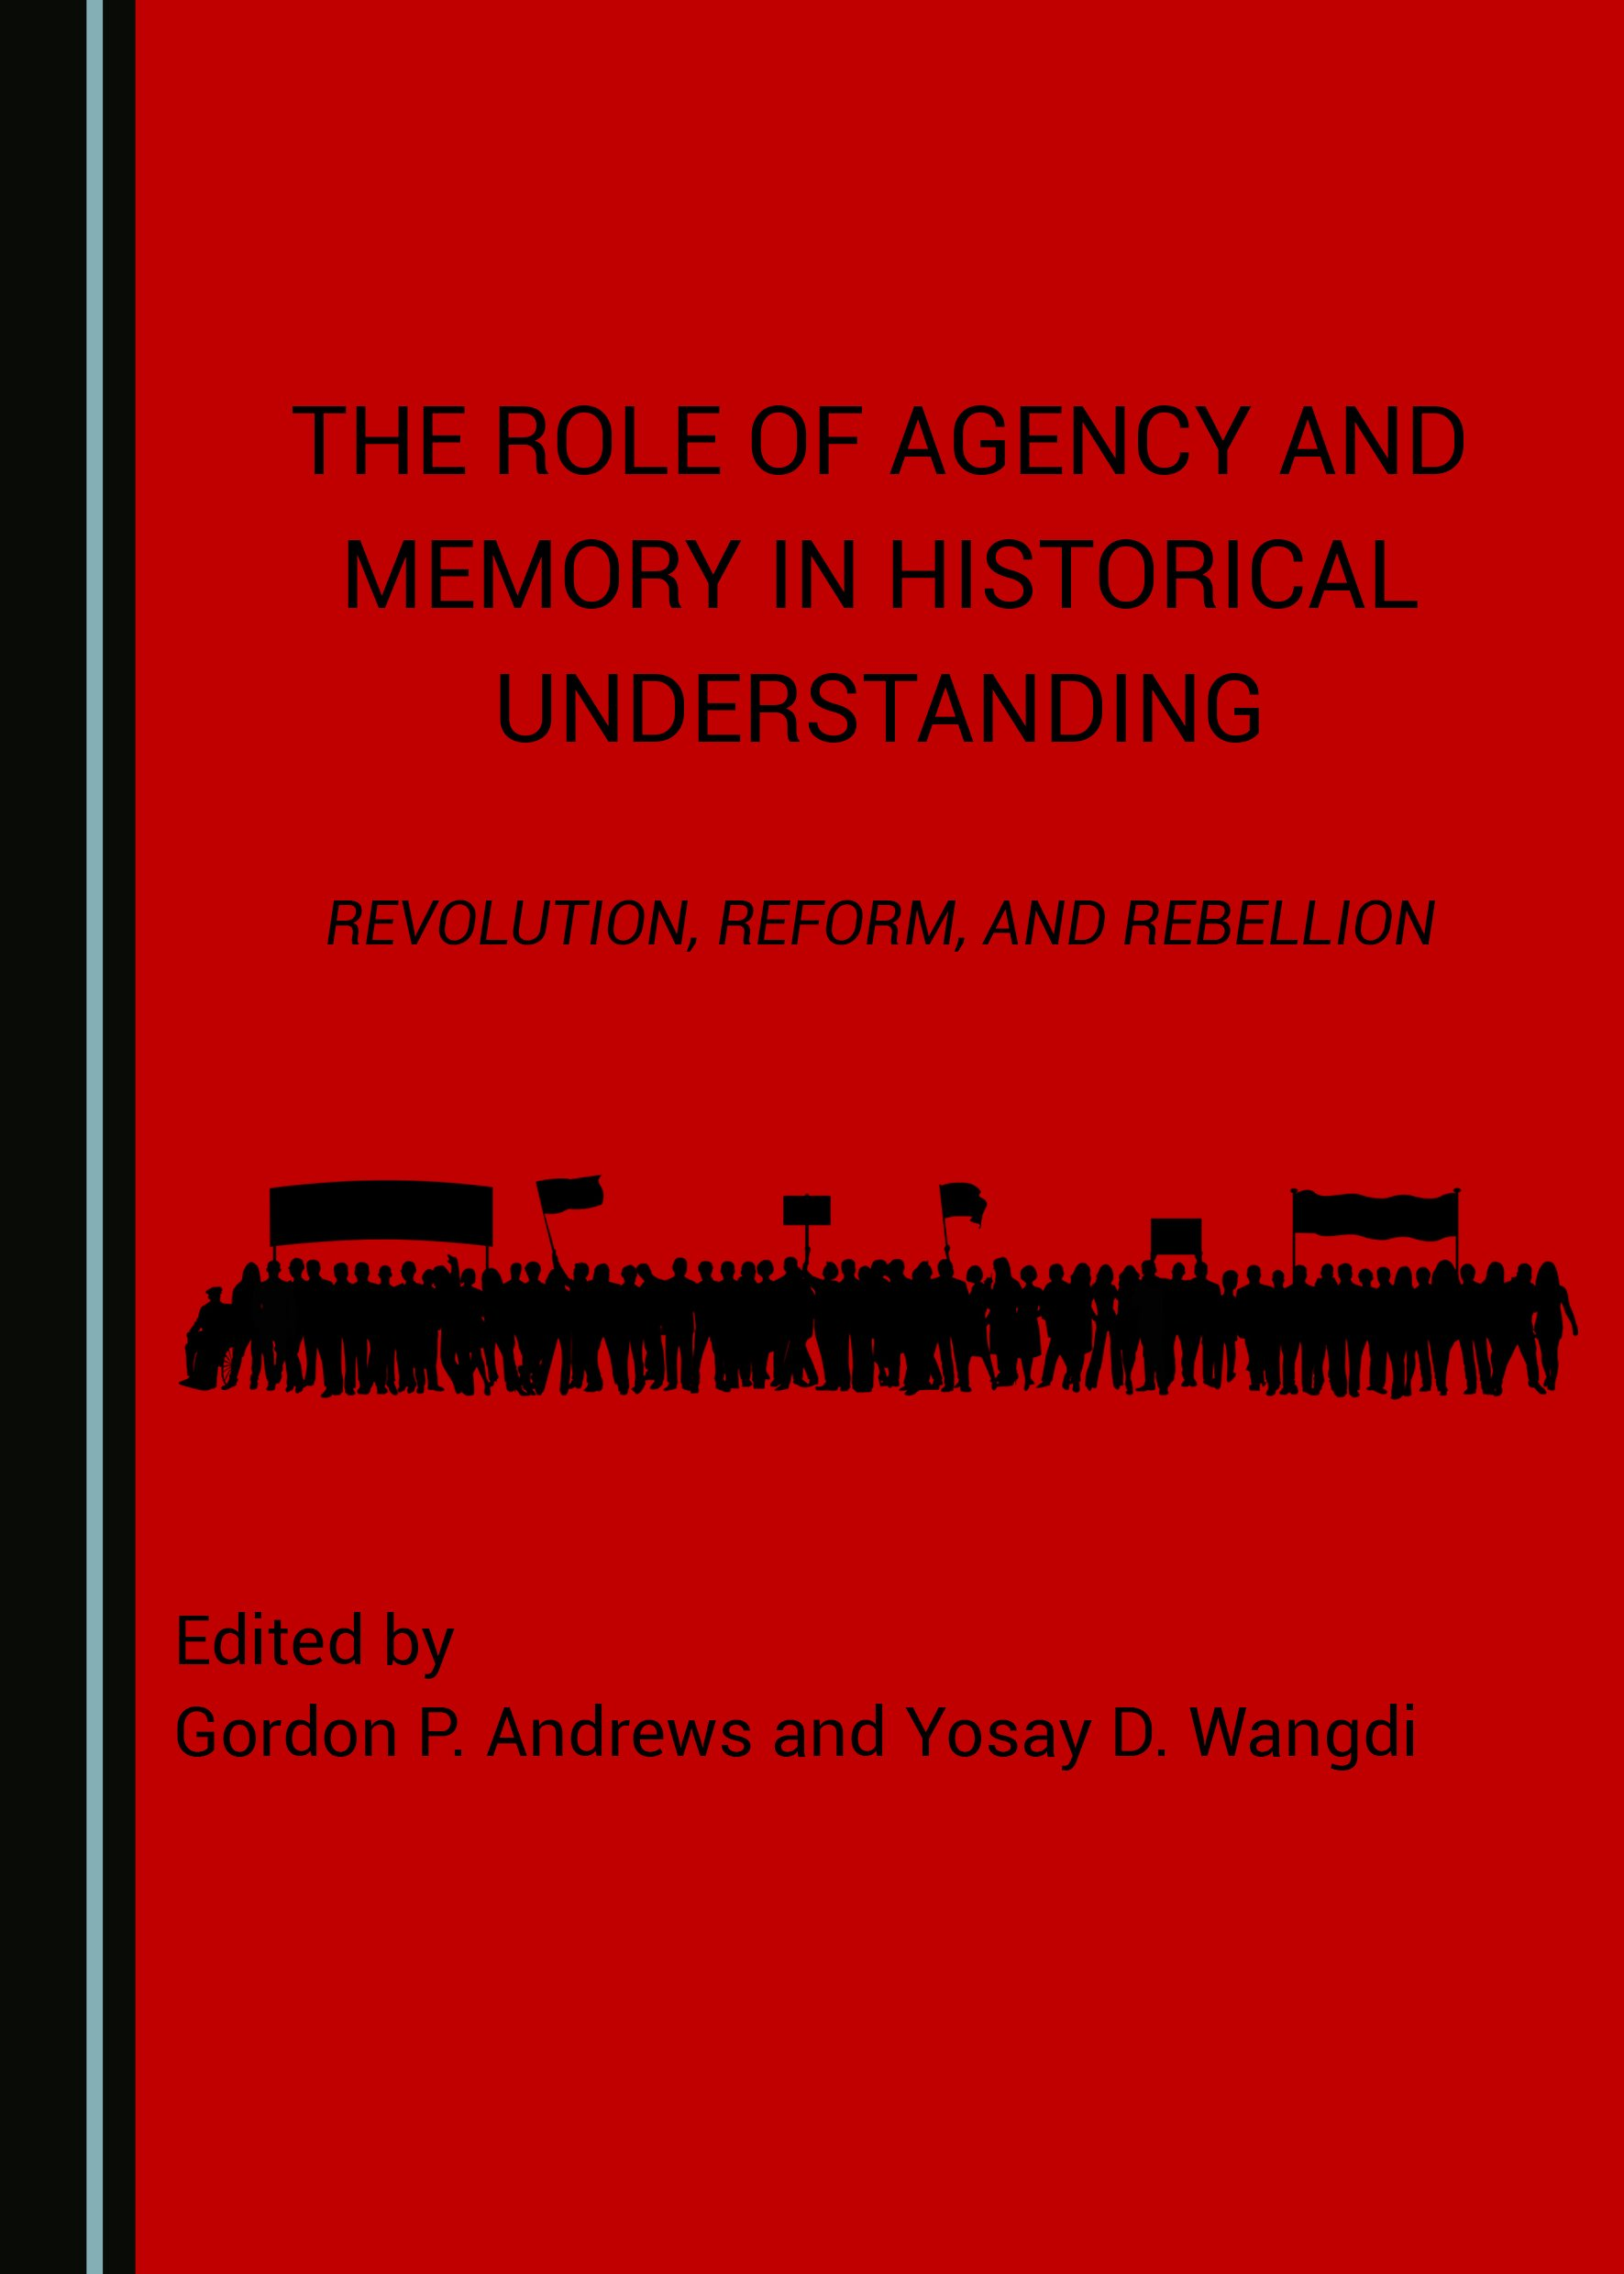 The Role of Agency and Memory in Historical Understanding: Revolution, Reform, and Rebellion